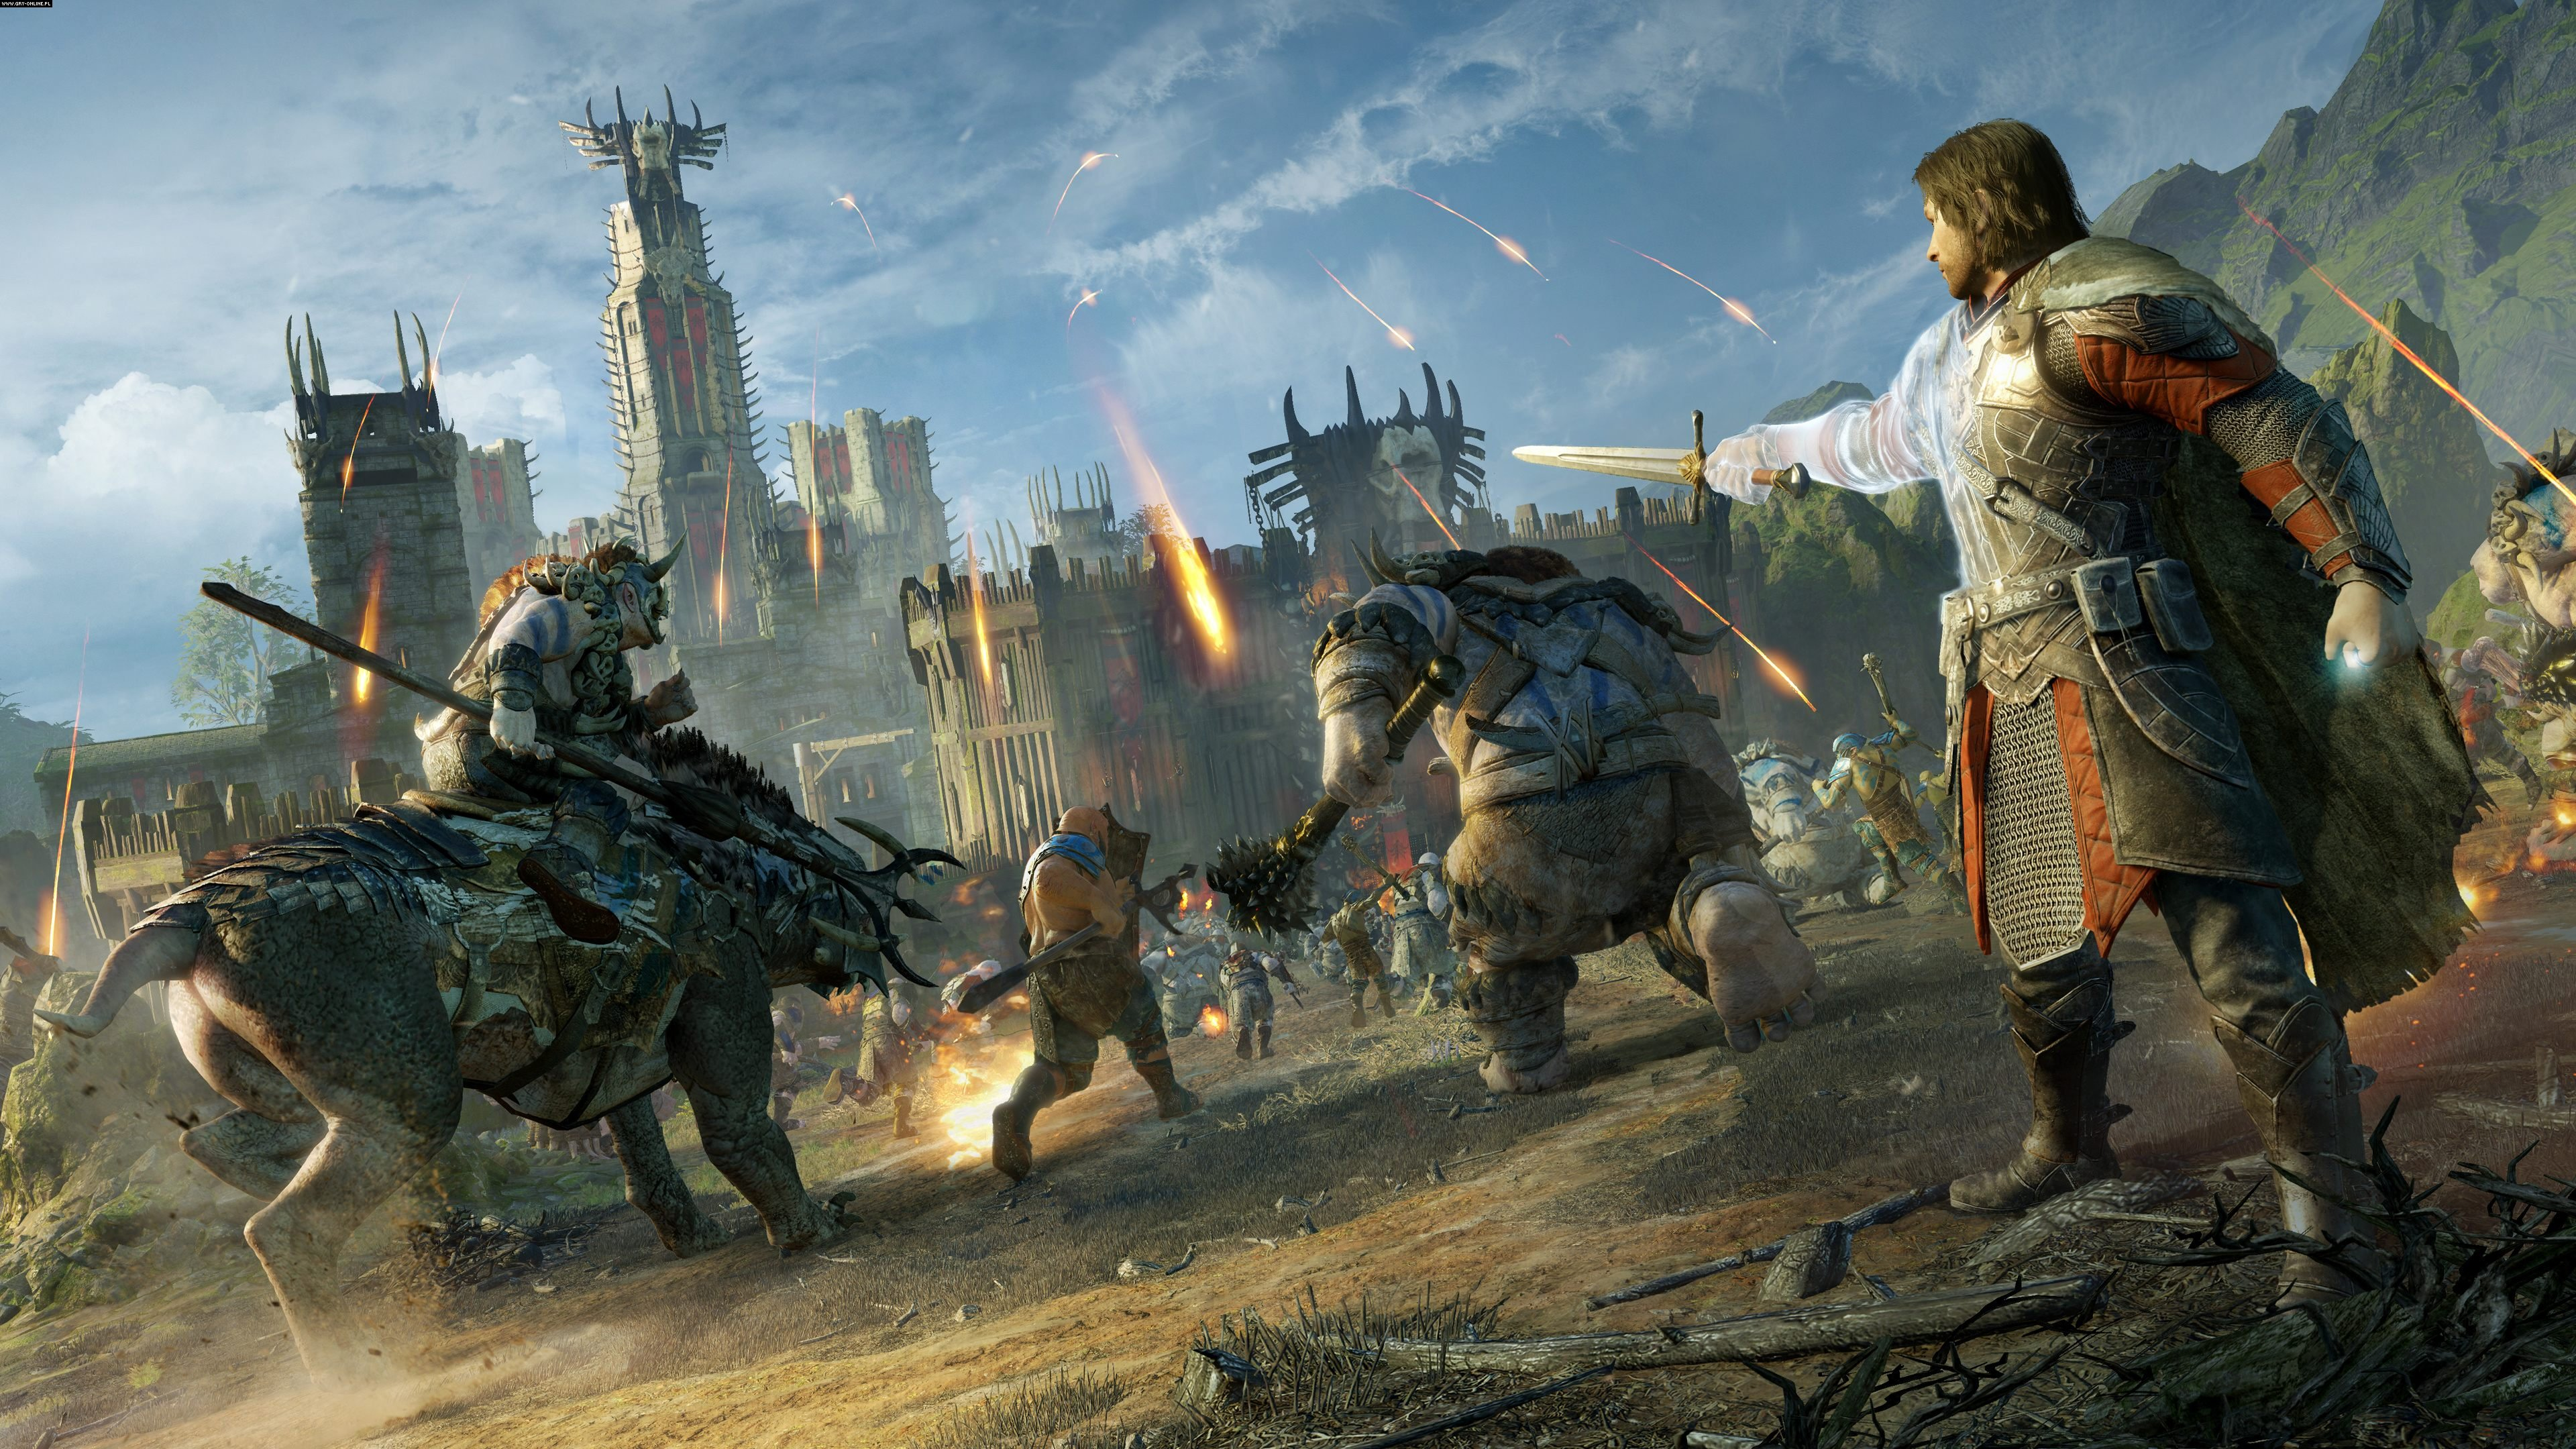 Middle-earth: Shadow of War PS4, XONE, PC Games Image 23/26, Monolith Productions, Warner Bros. Interactive Entertainment